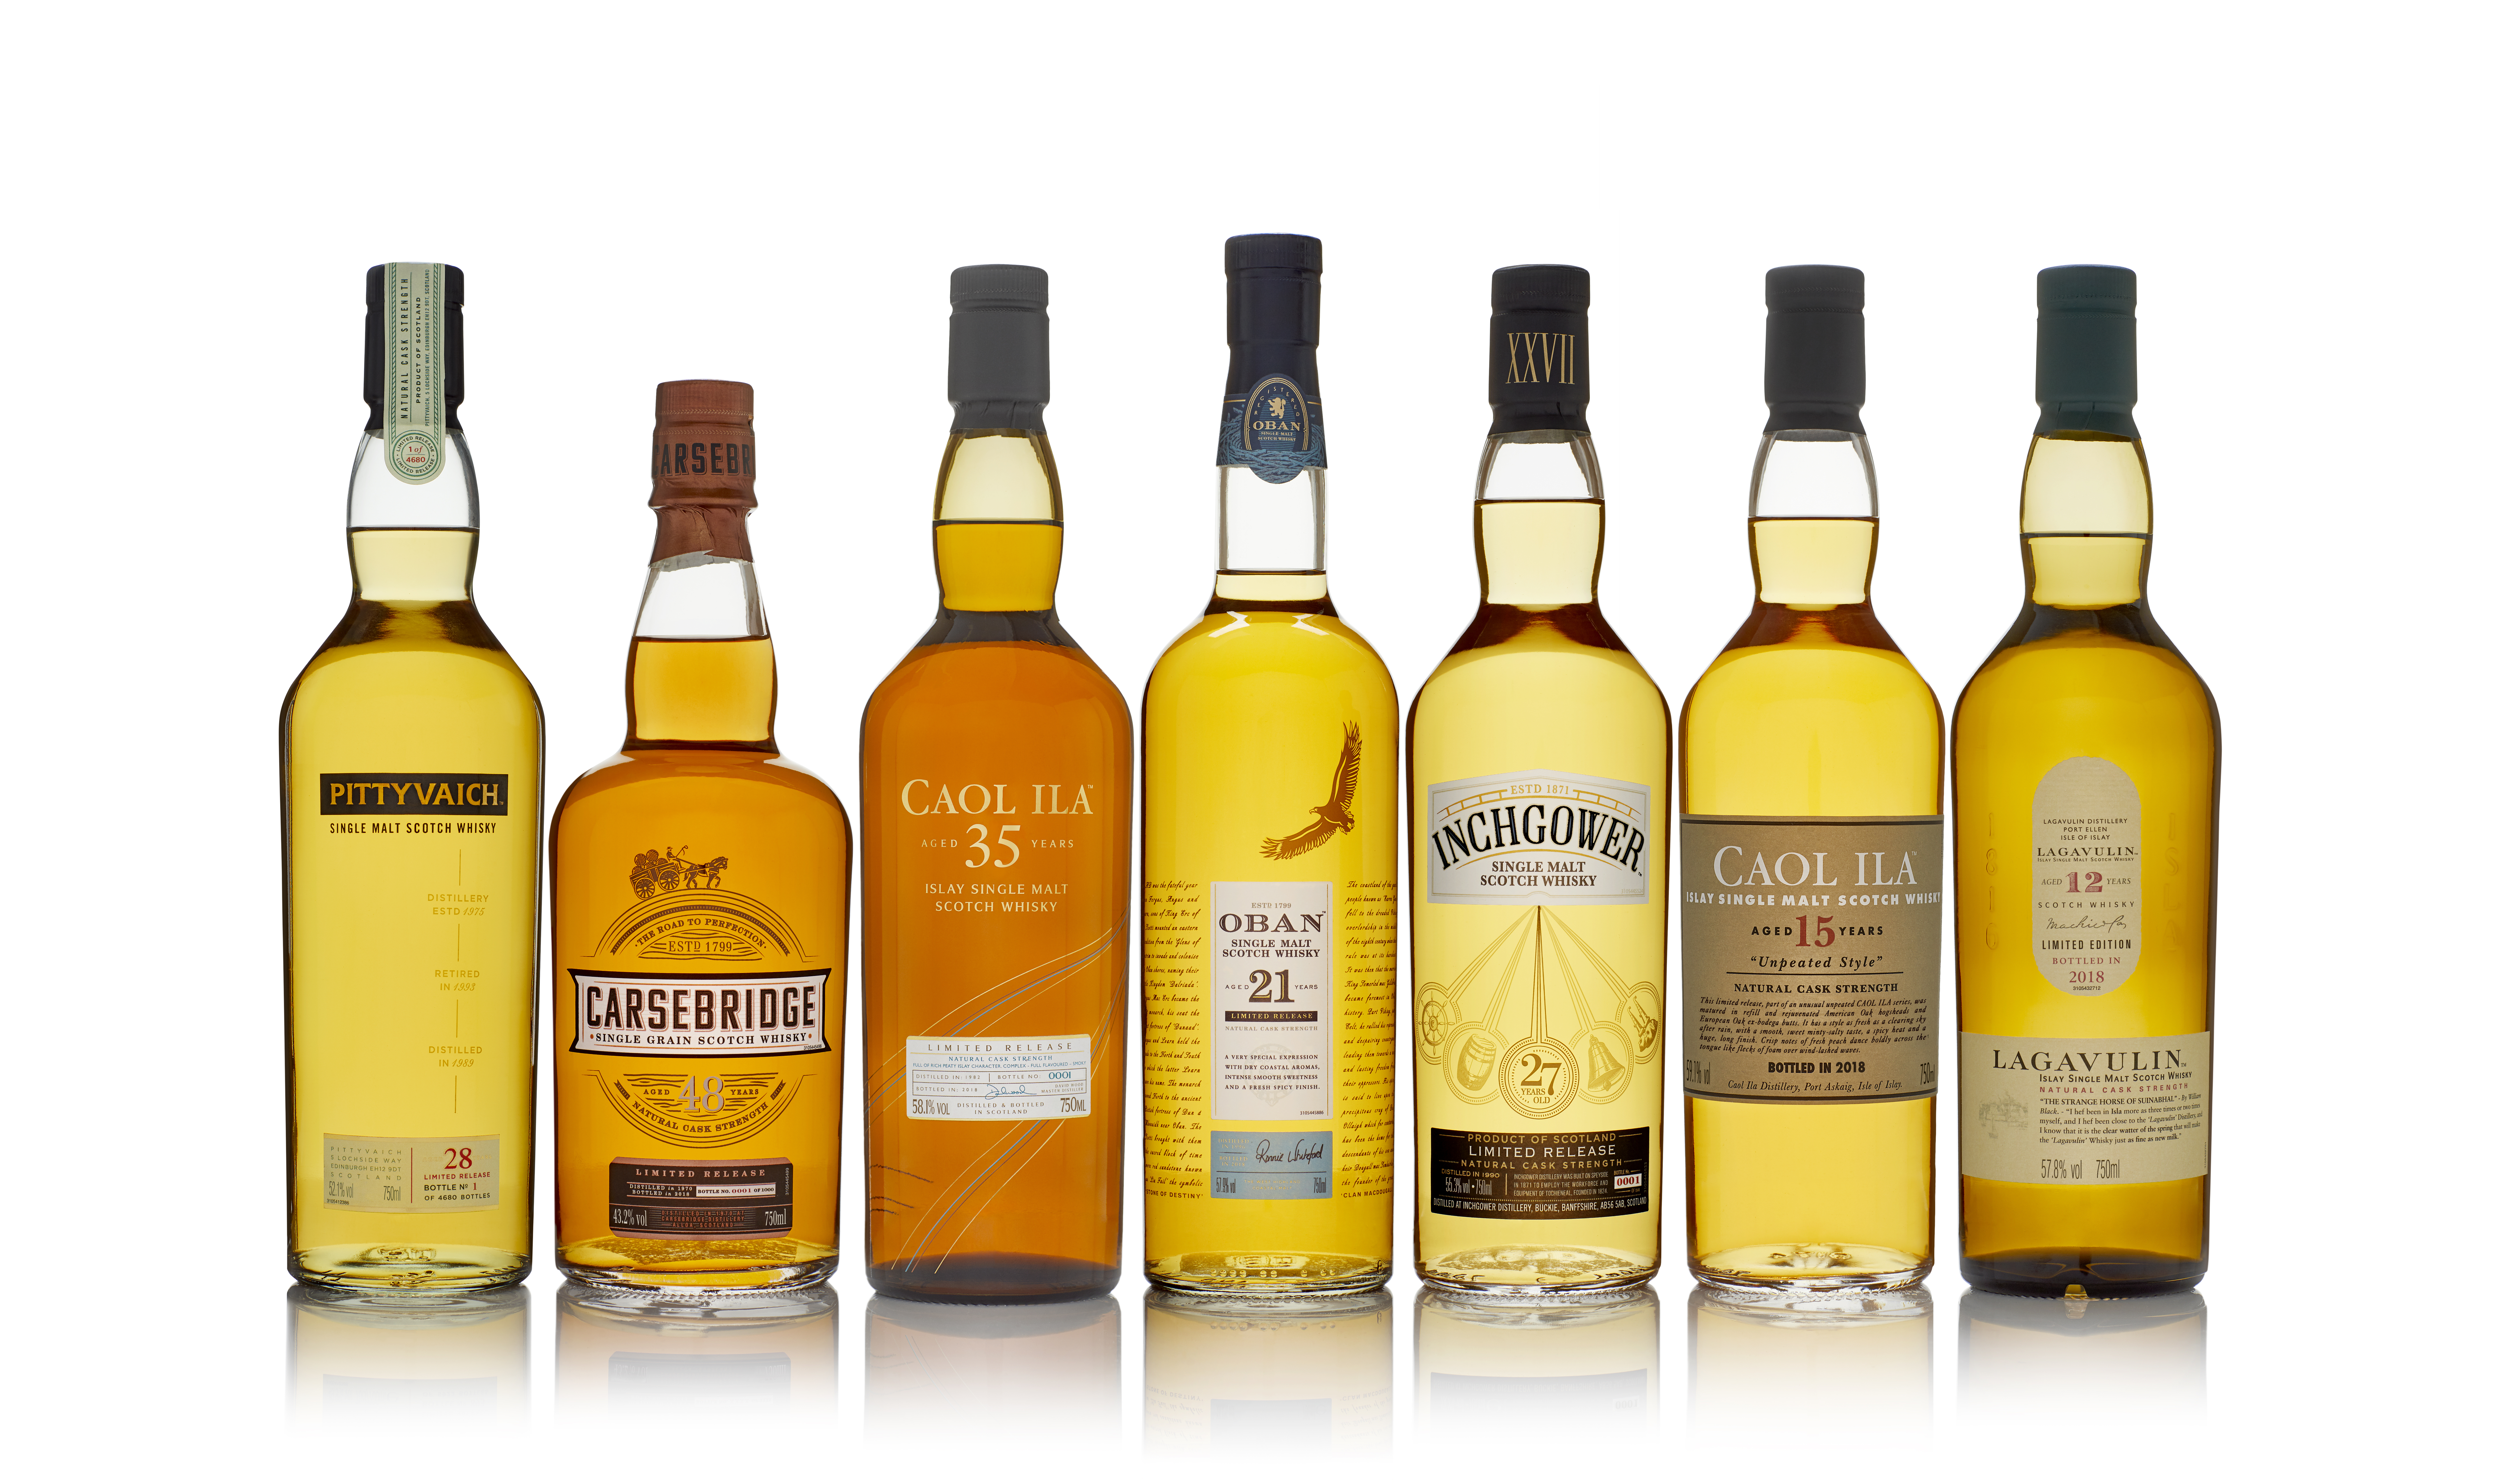 Diageo 2018 Special Releases Collection Image